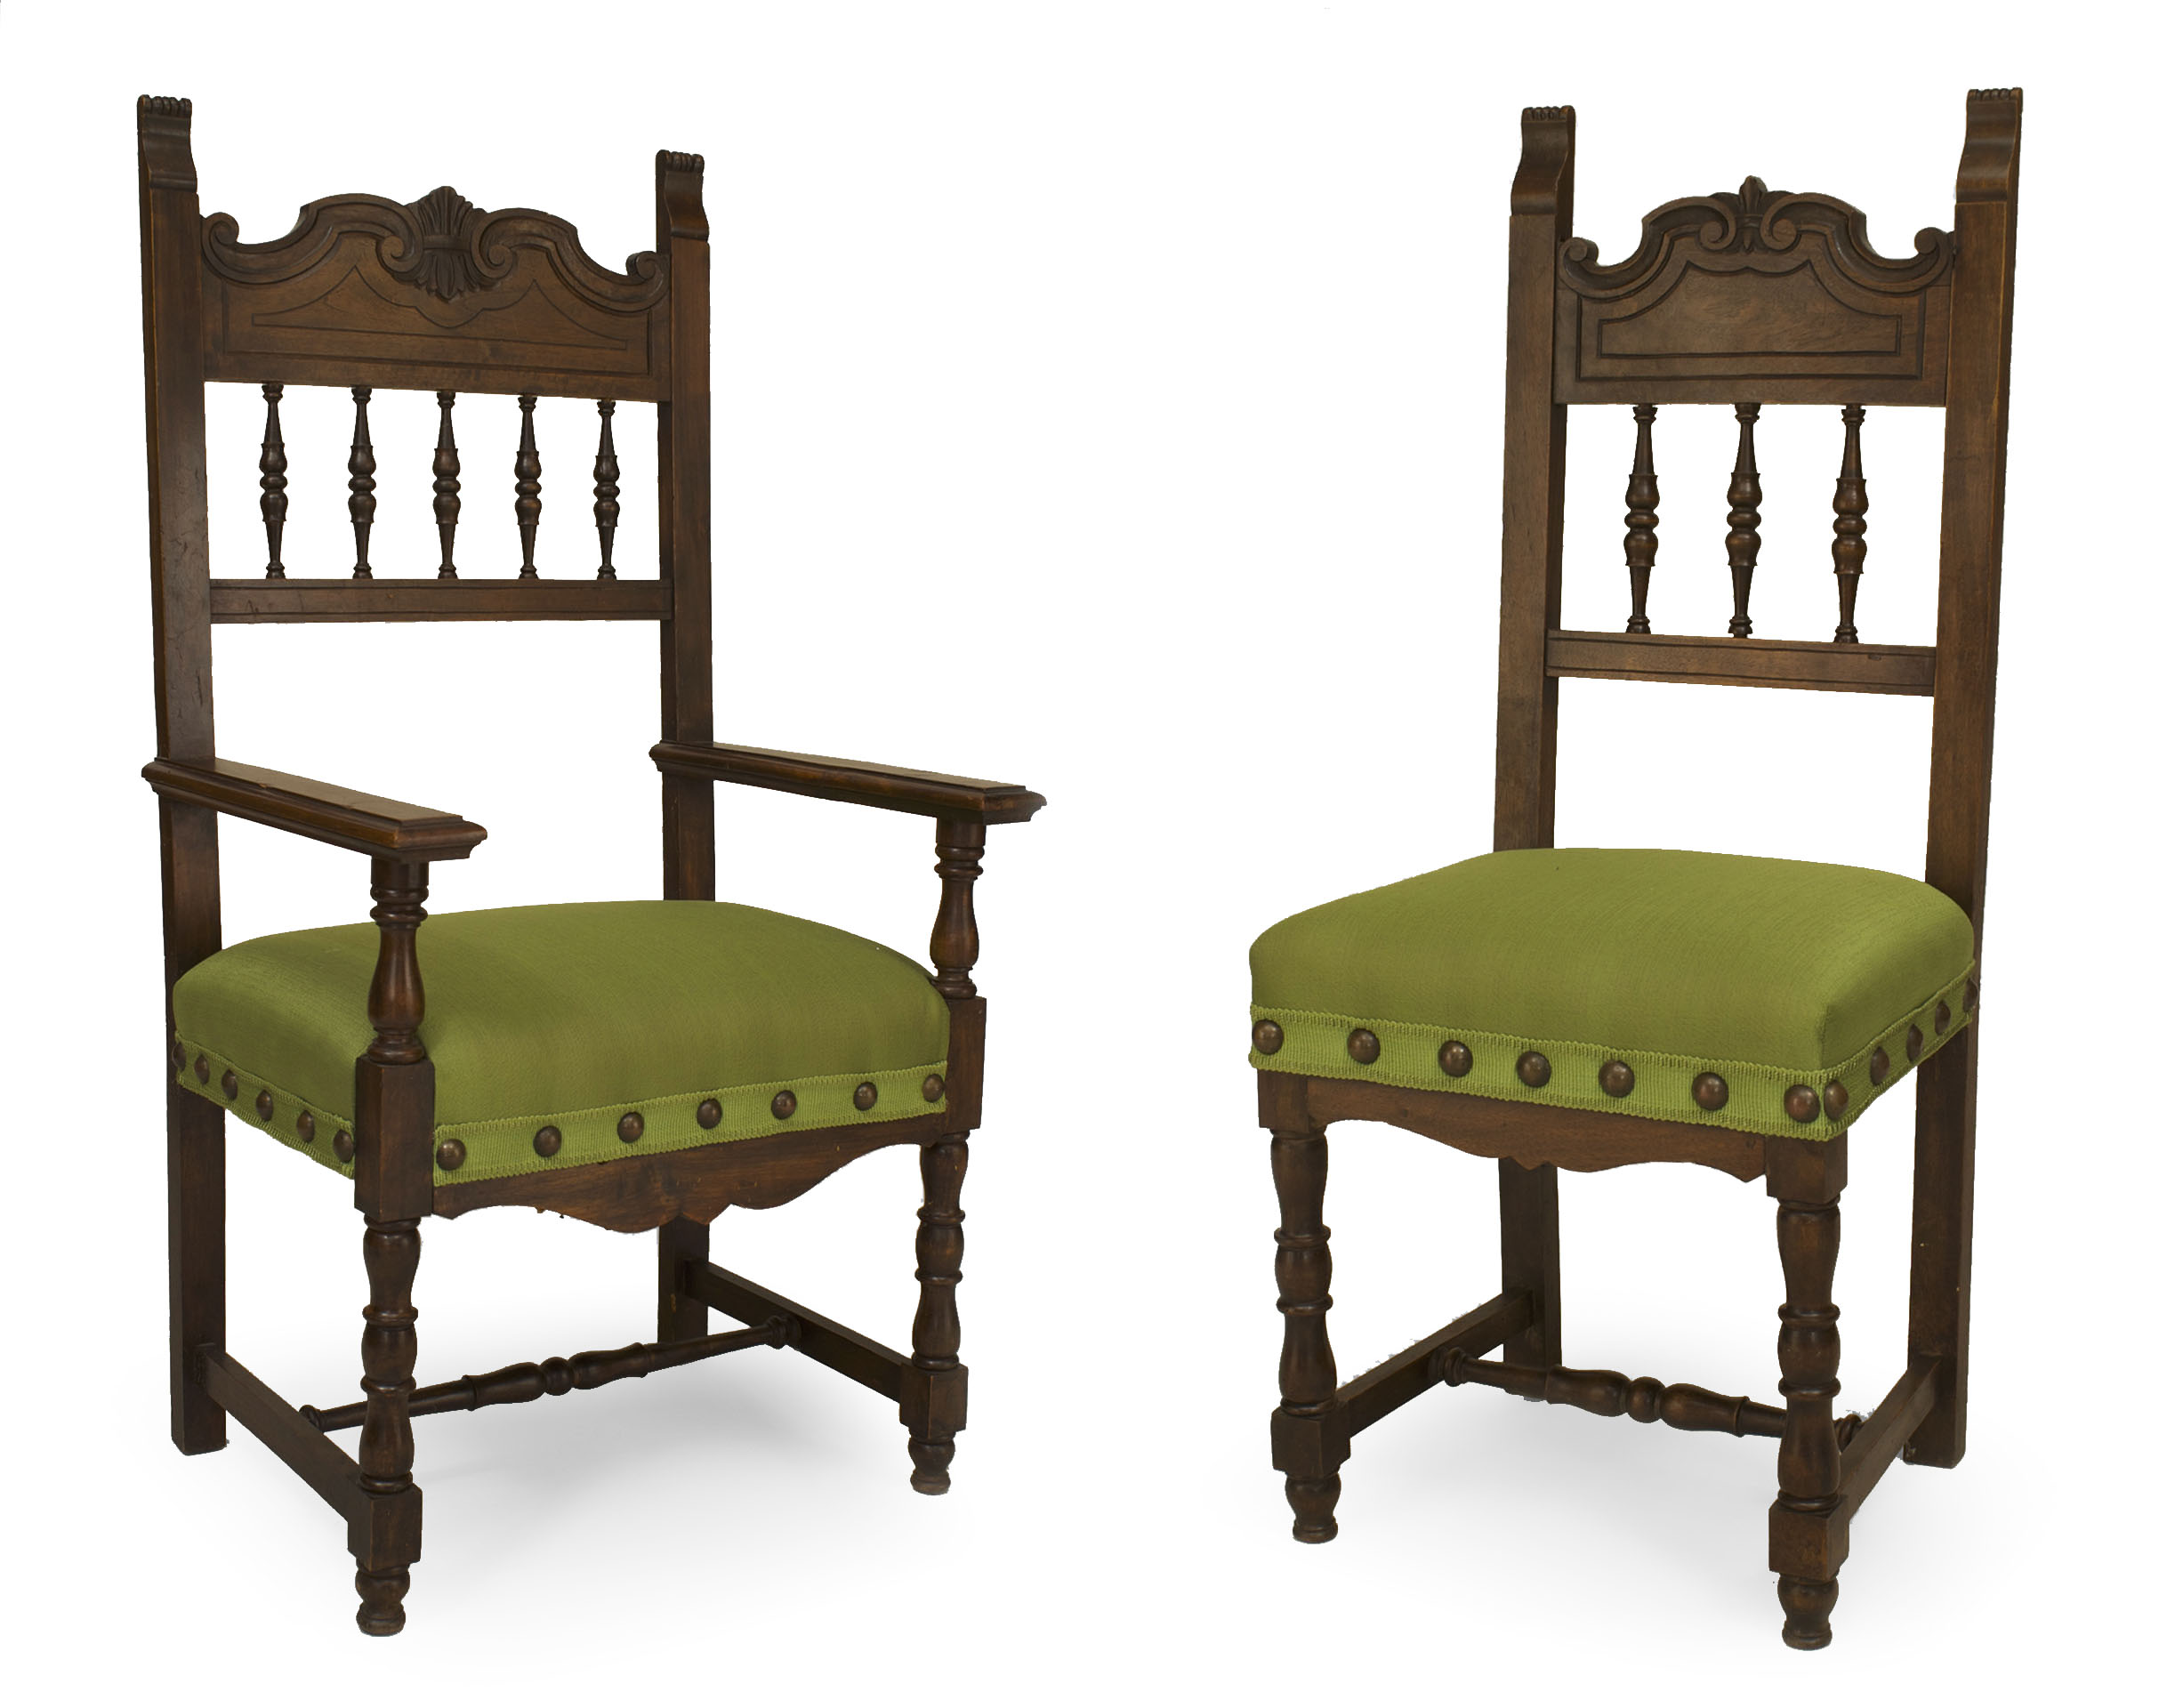 Chair In Spanish About Us Spanish Renaissance Green Upholstered Chair